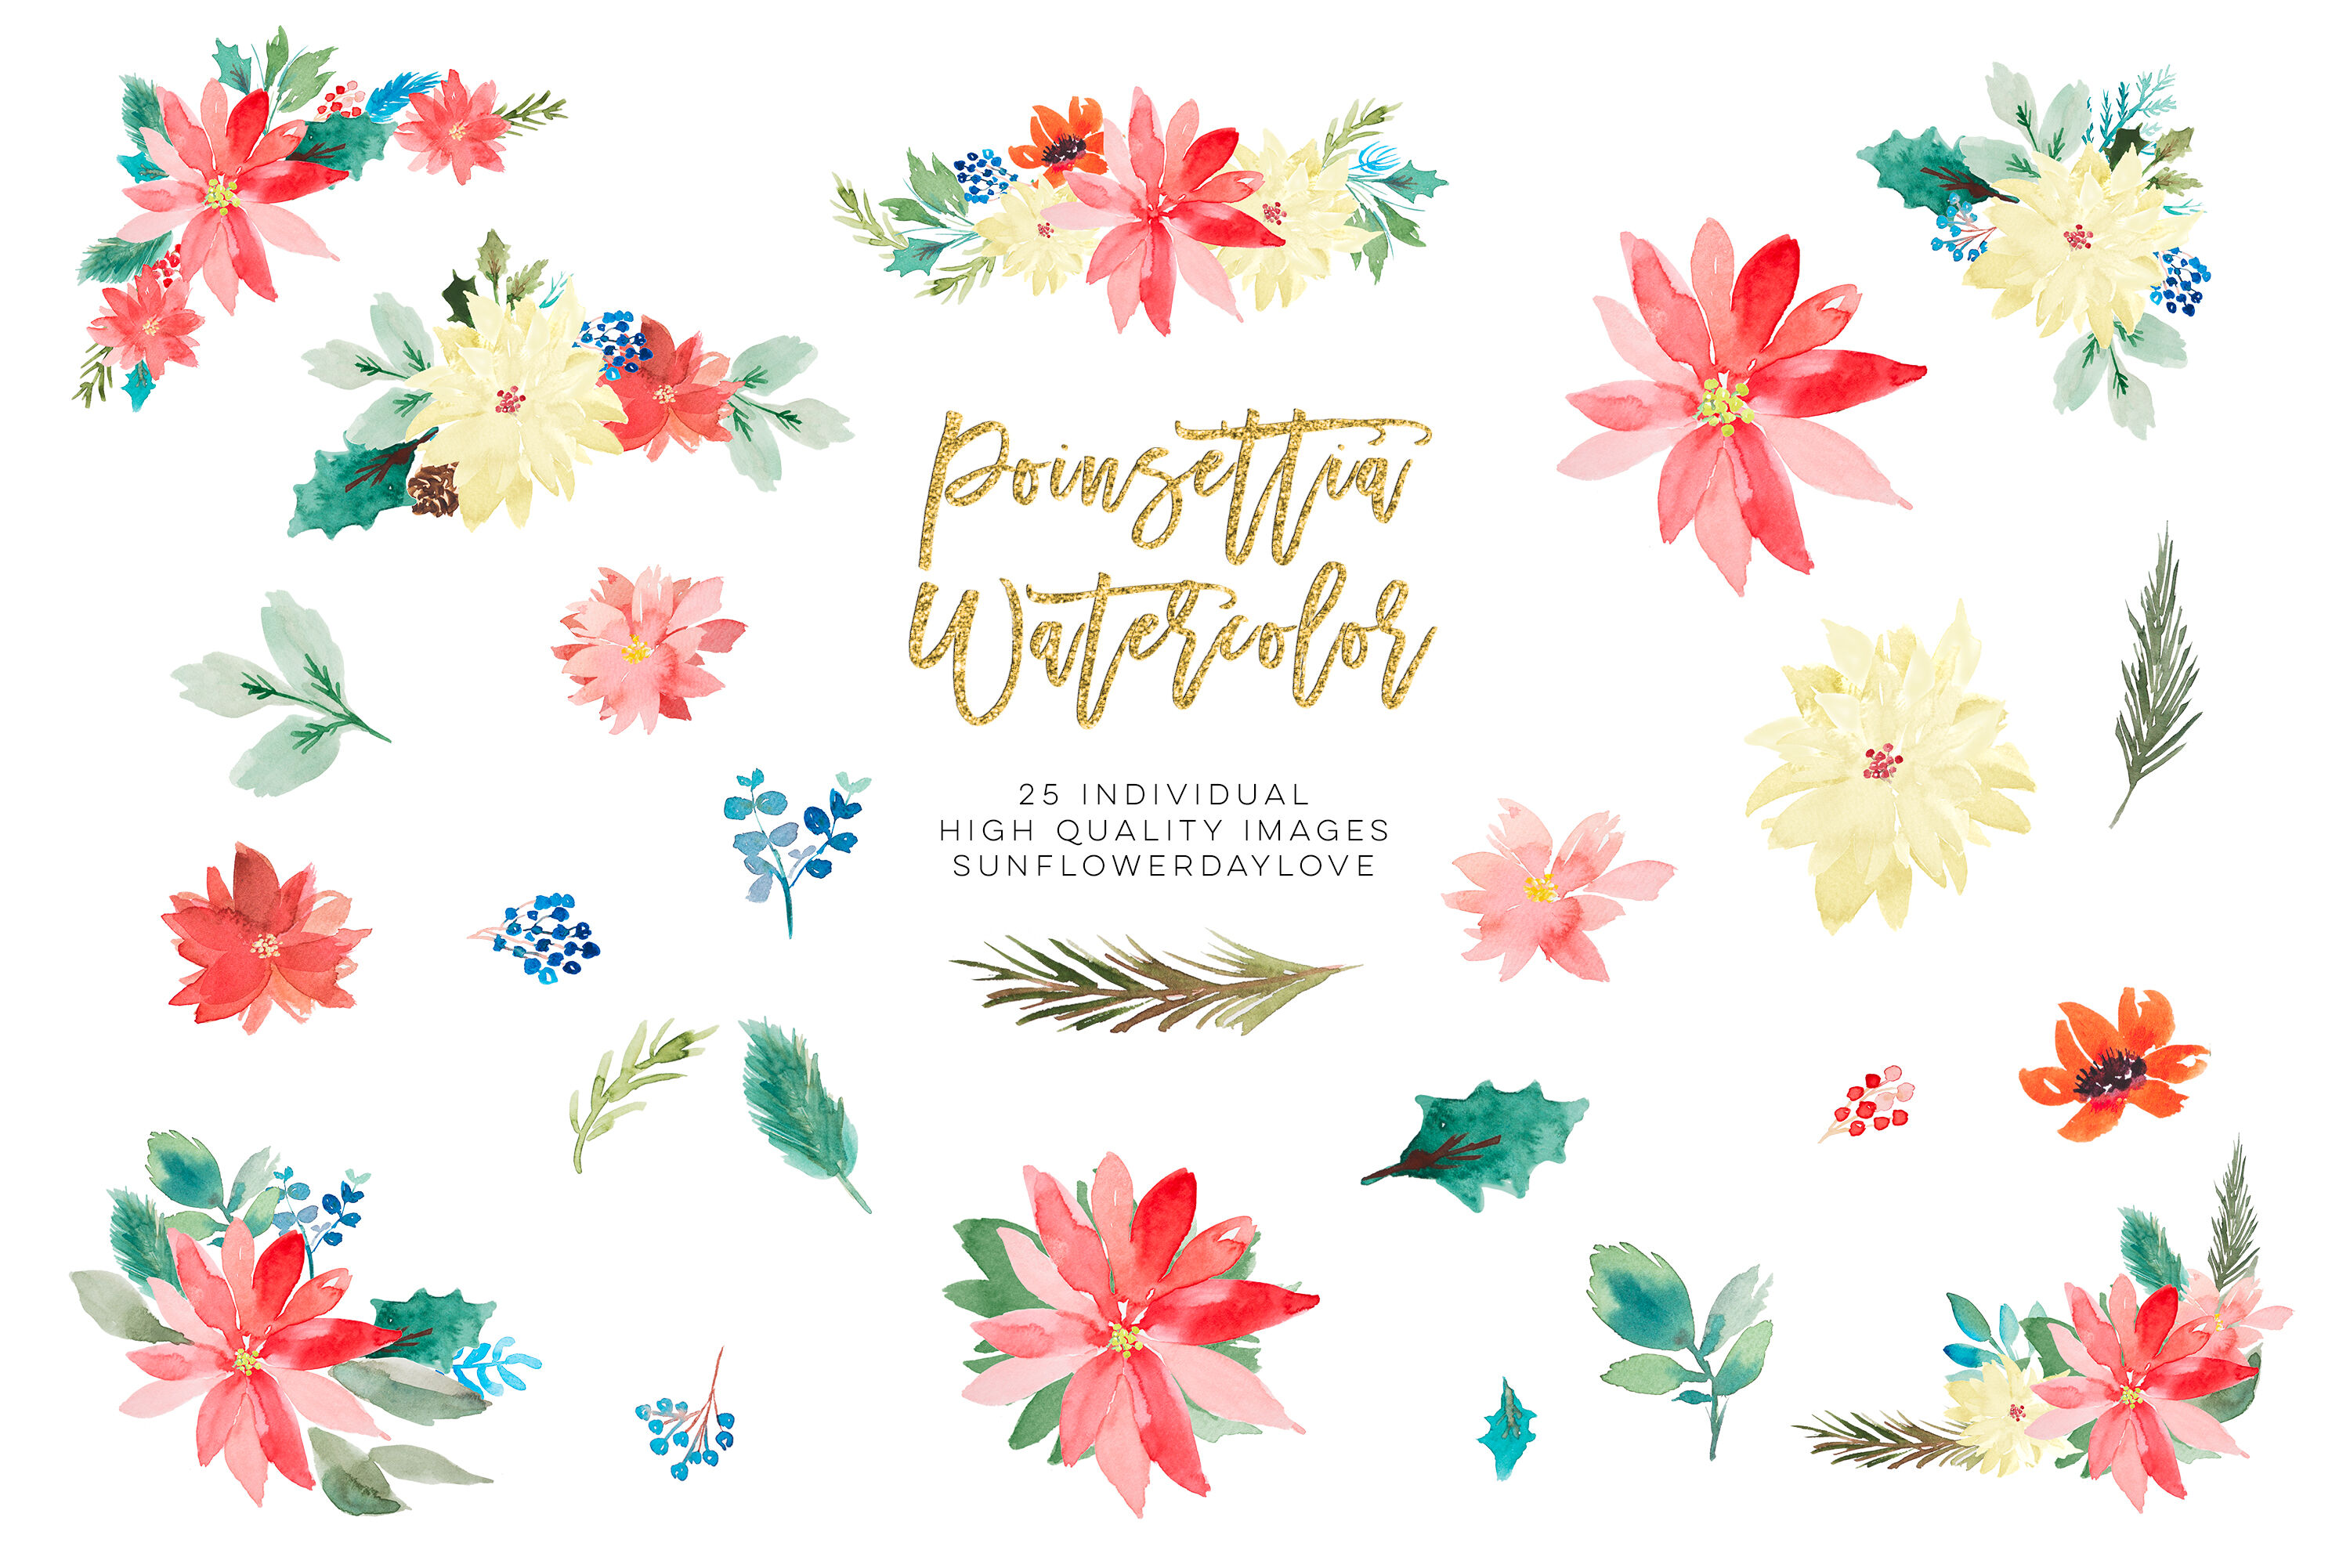 Poinsettia clipart, Christmas Wedding Invitation clipart By.